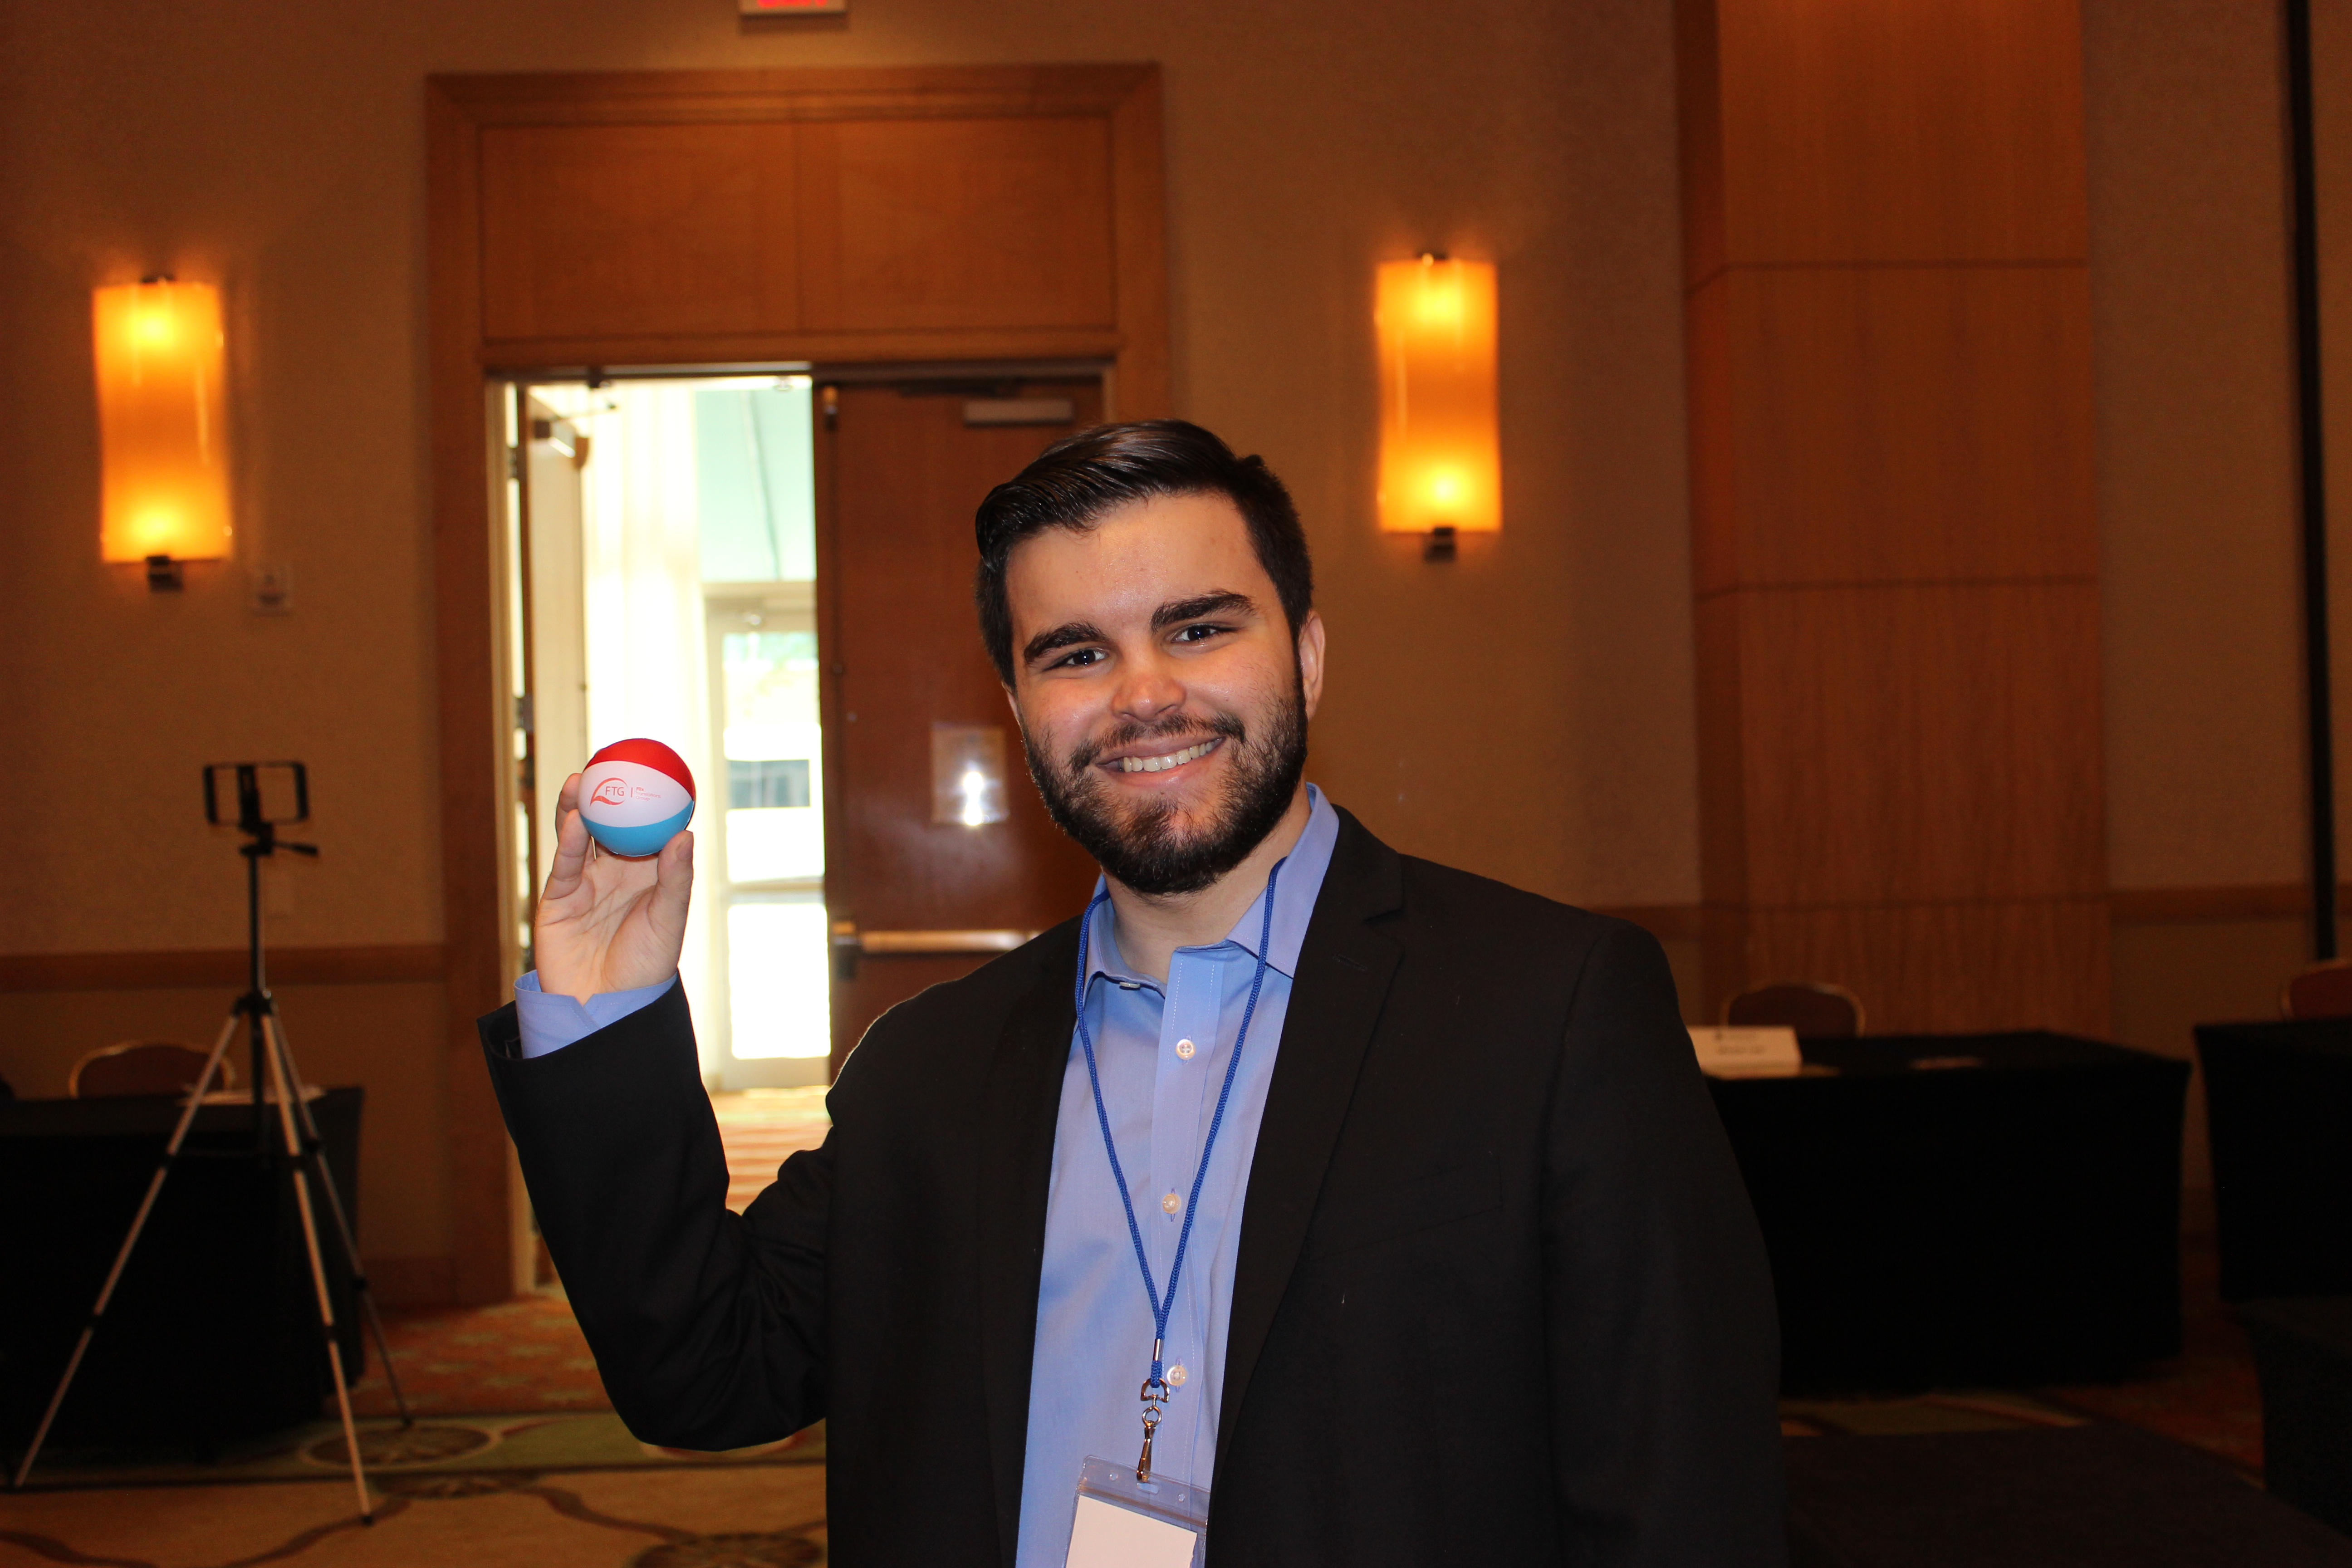 John Pena, Web Developer in ExpoMiami 2018 hosted by the Doral Chamber of Commerce.